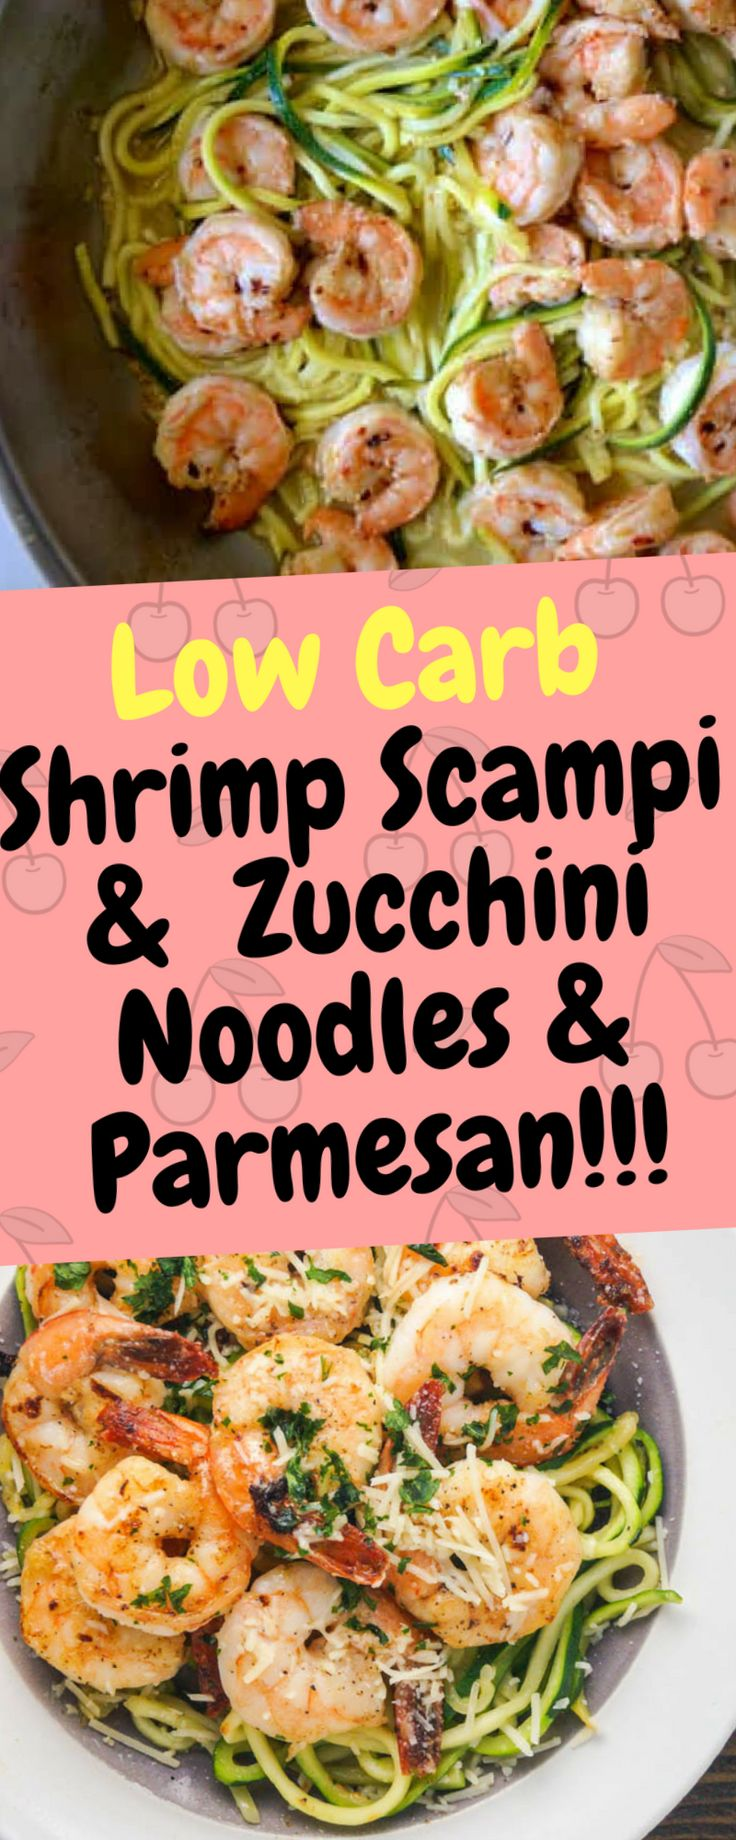 Low Carb Shrimp Scampi & Zucchini Noodles & Parmesan – 10Recipes10